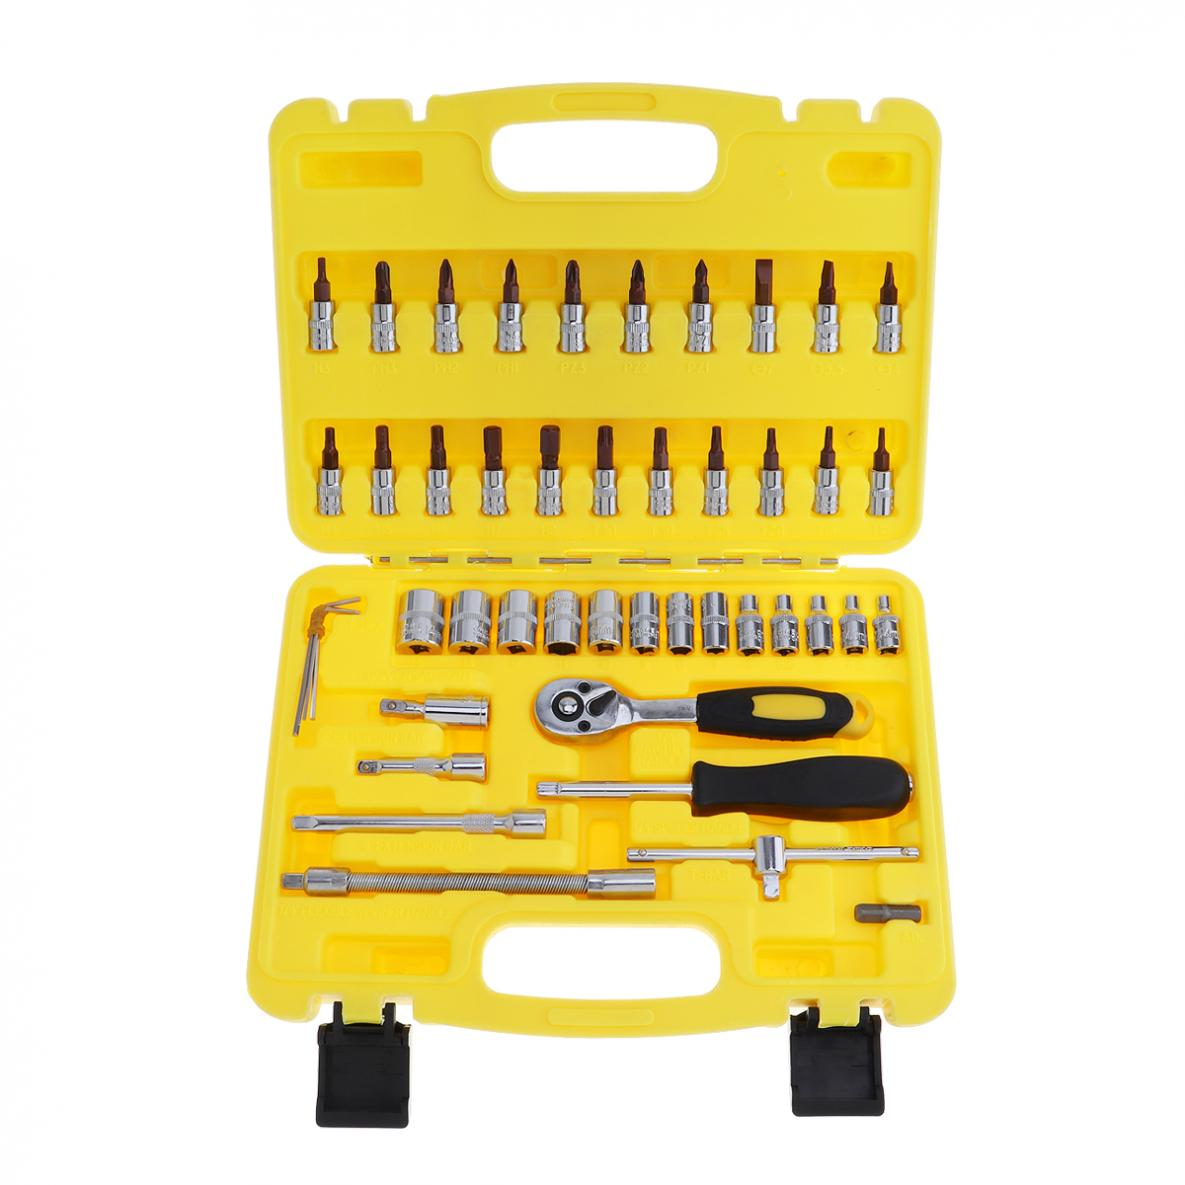 46pcs Repair Tool Box Precision 1/4 Sleeve Socket Wrench Set Ratchet Torque Wrench Combo Tool Kit for Motorcycle Auto Repairing 61pcs torque wrench set ratchet spanners llave carraca 1 4 hand tool for car kit auto repair tool socket wrench set box